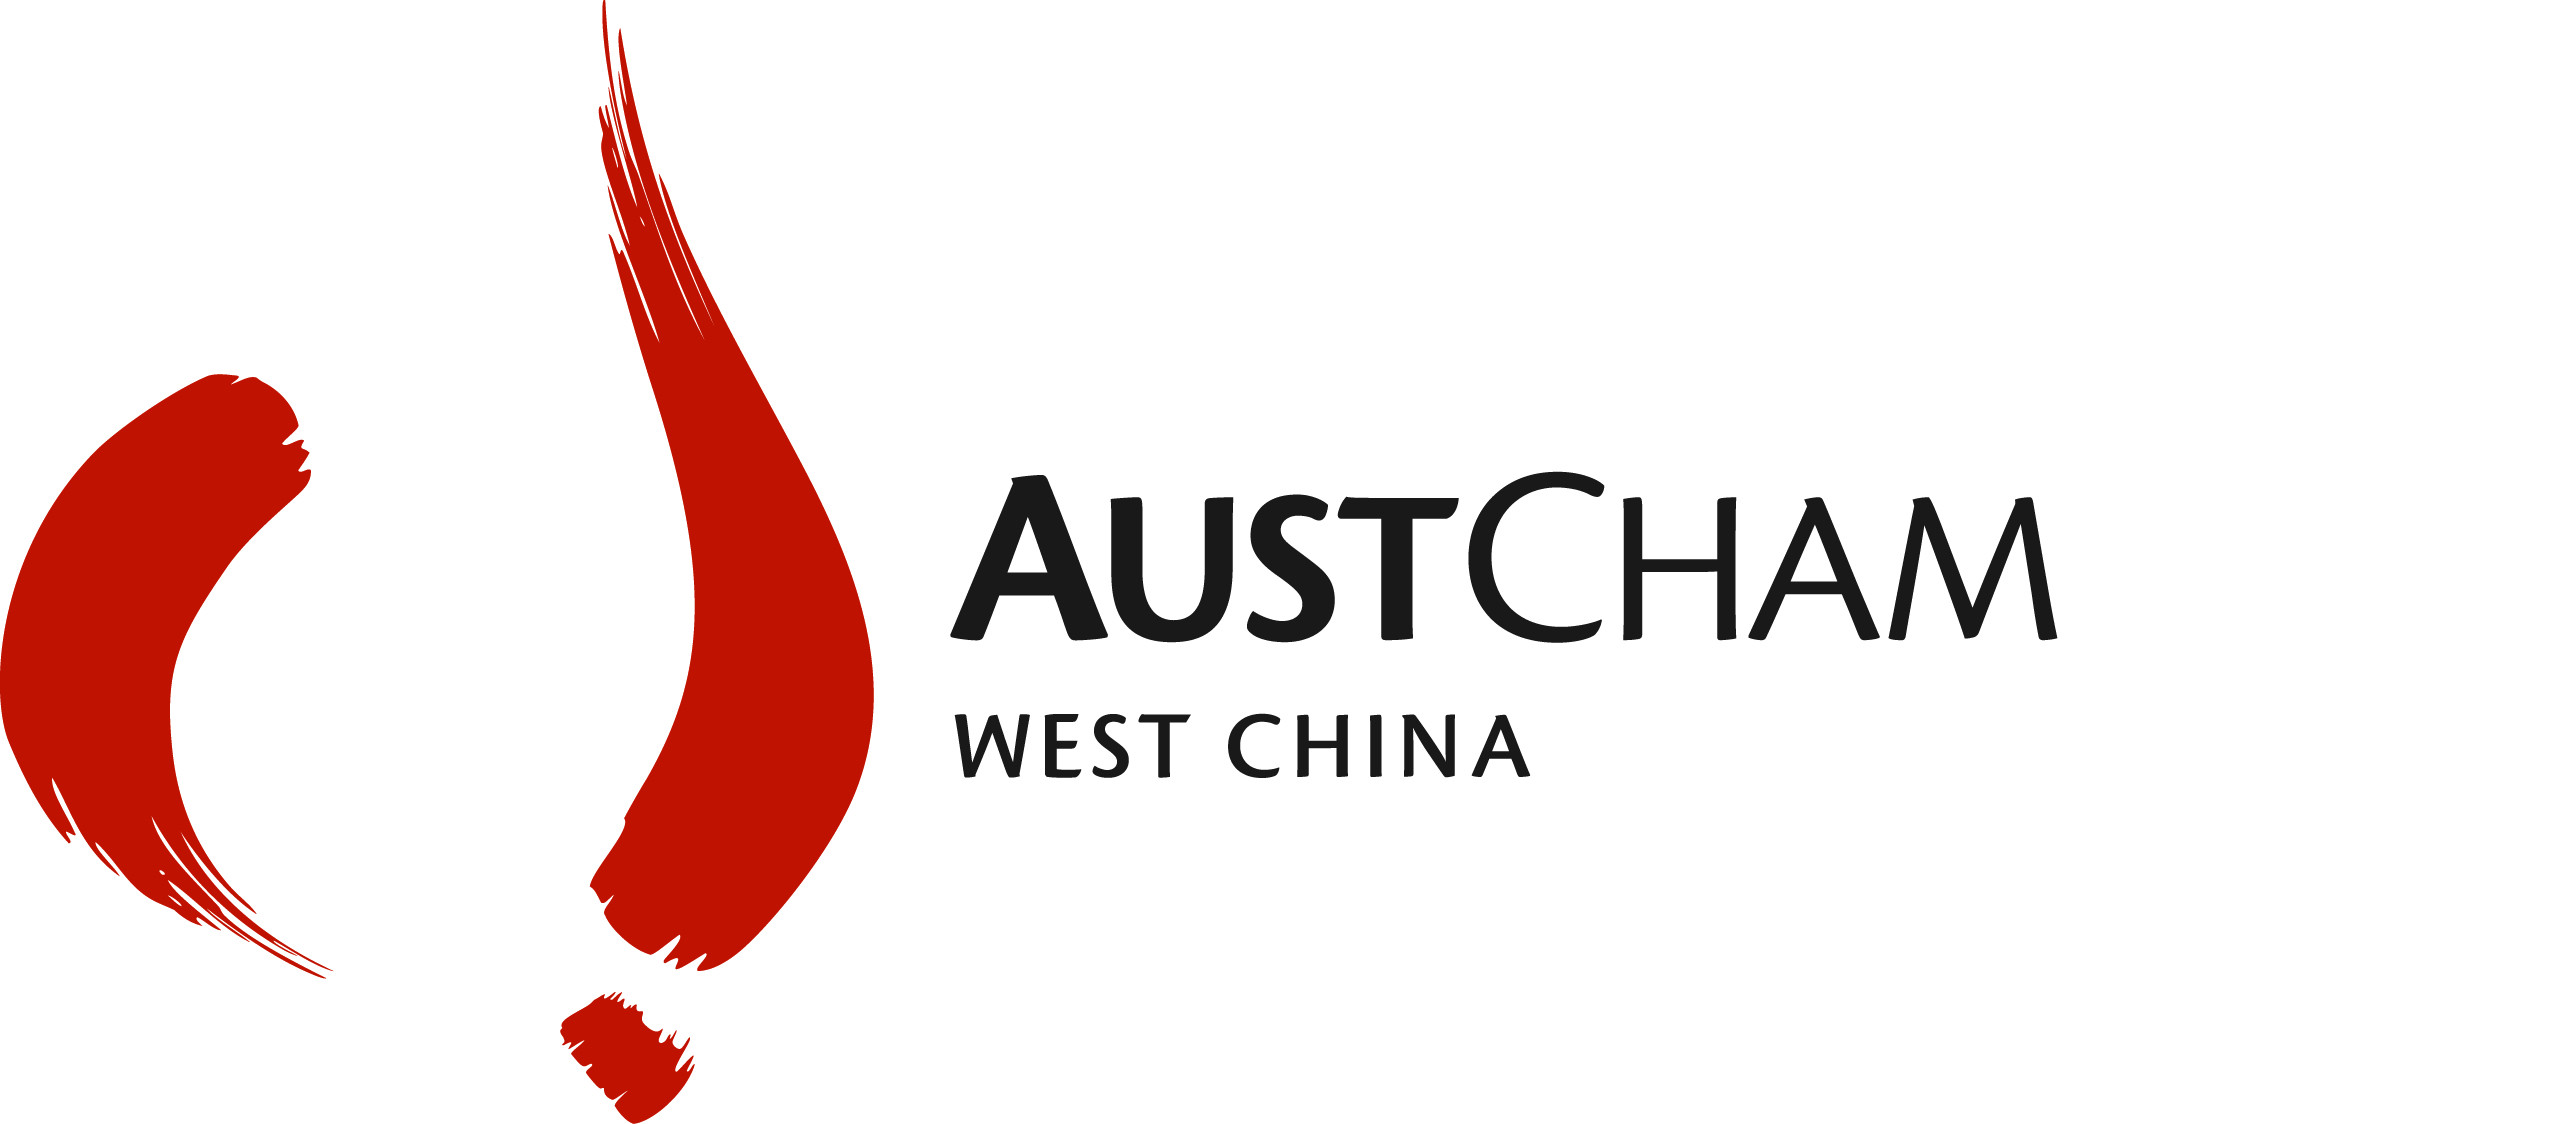 Austcham West China